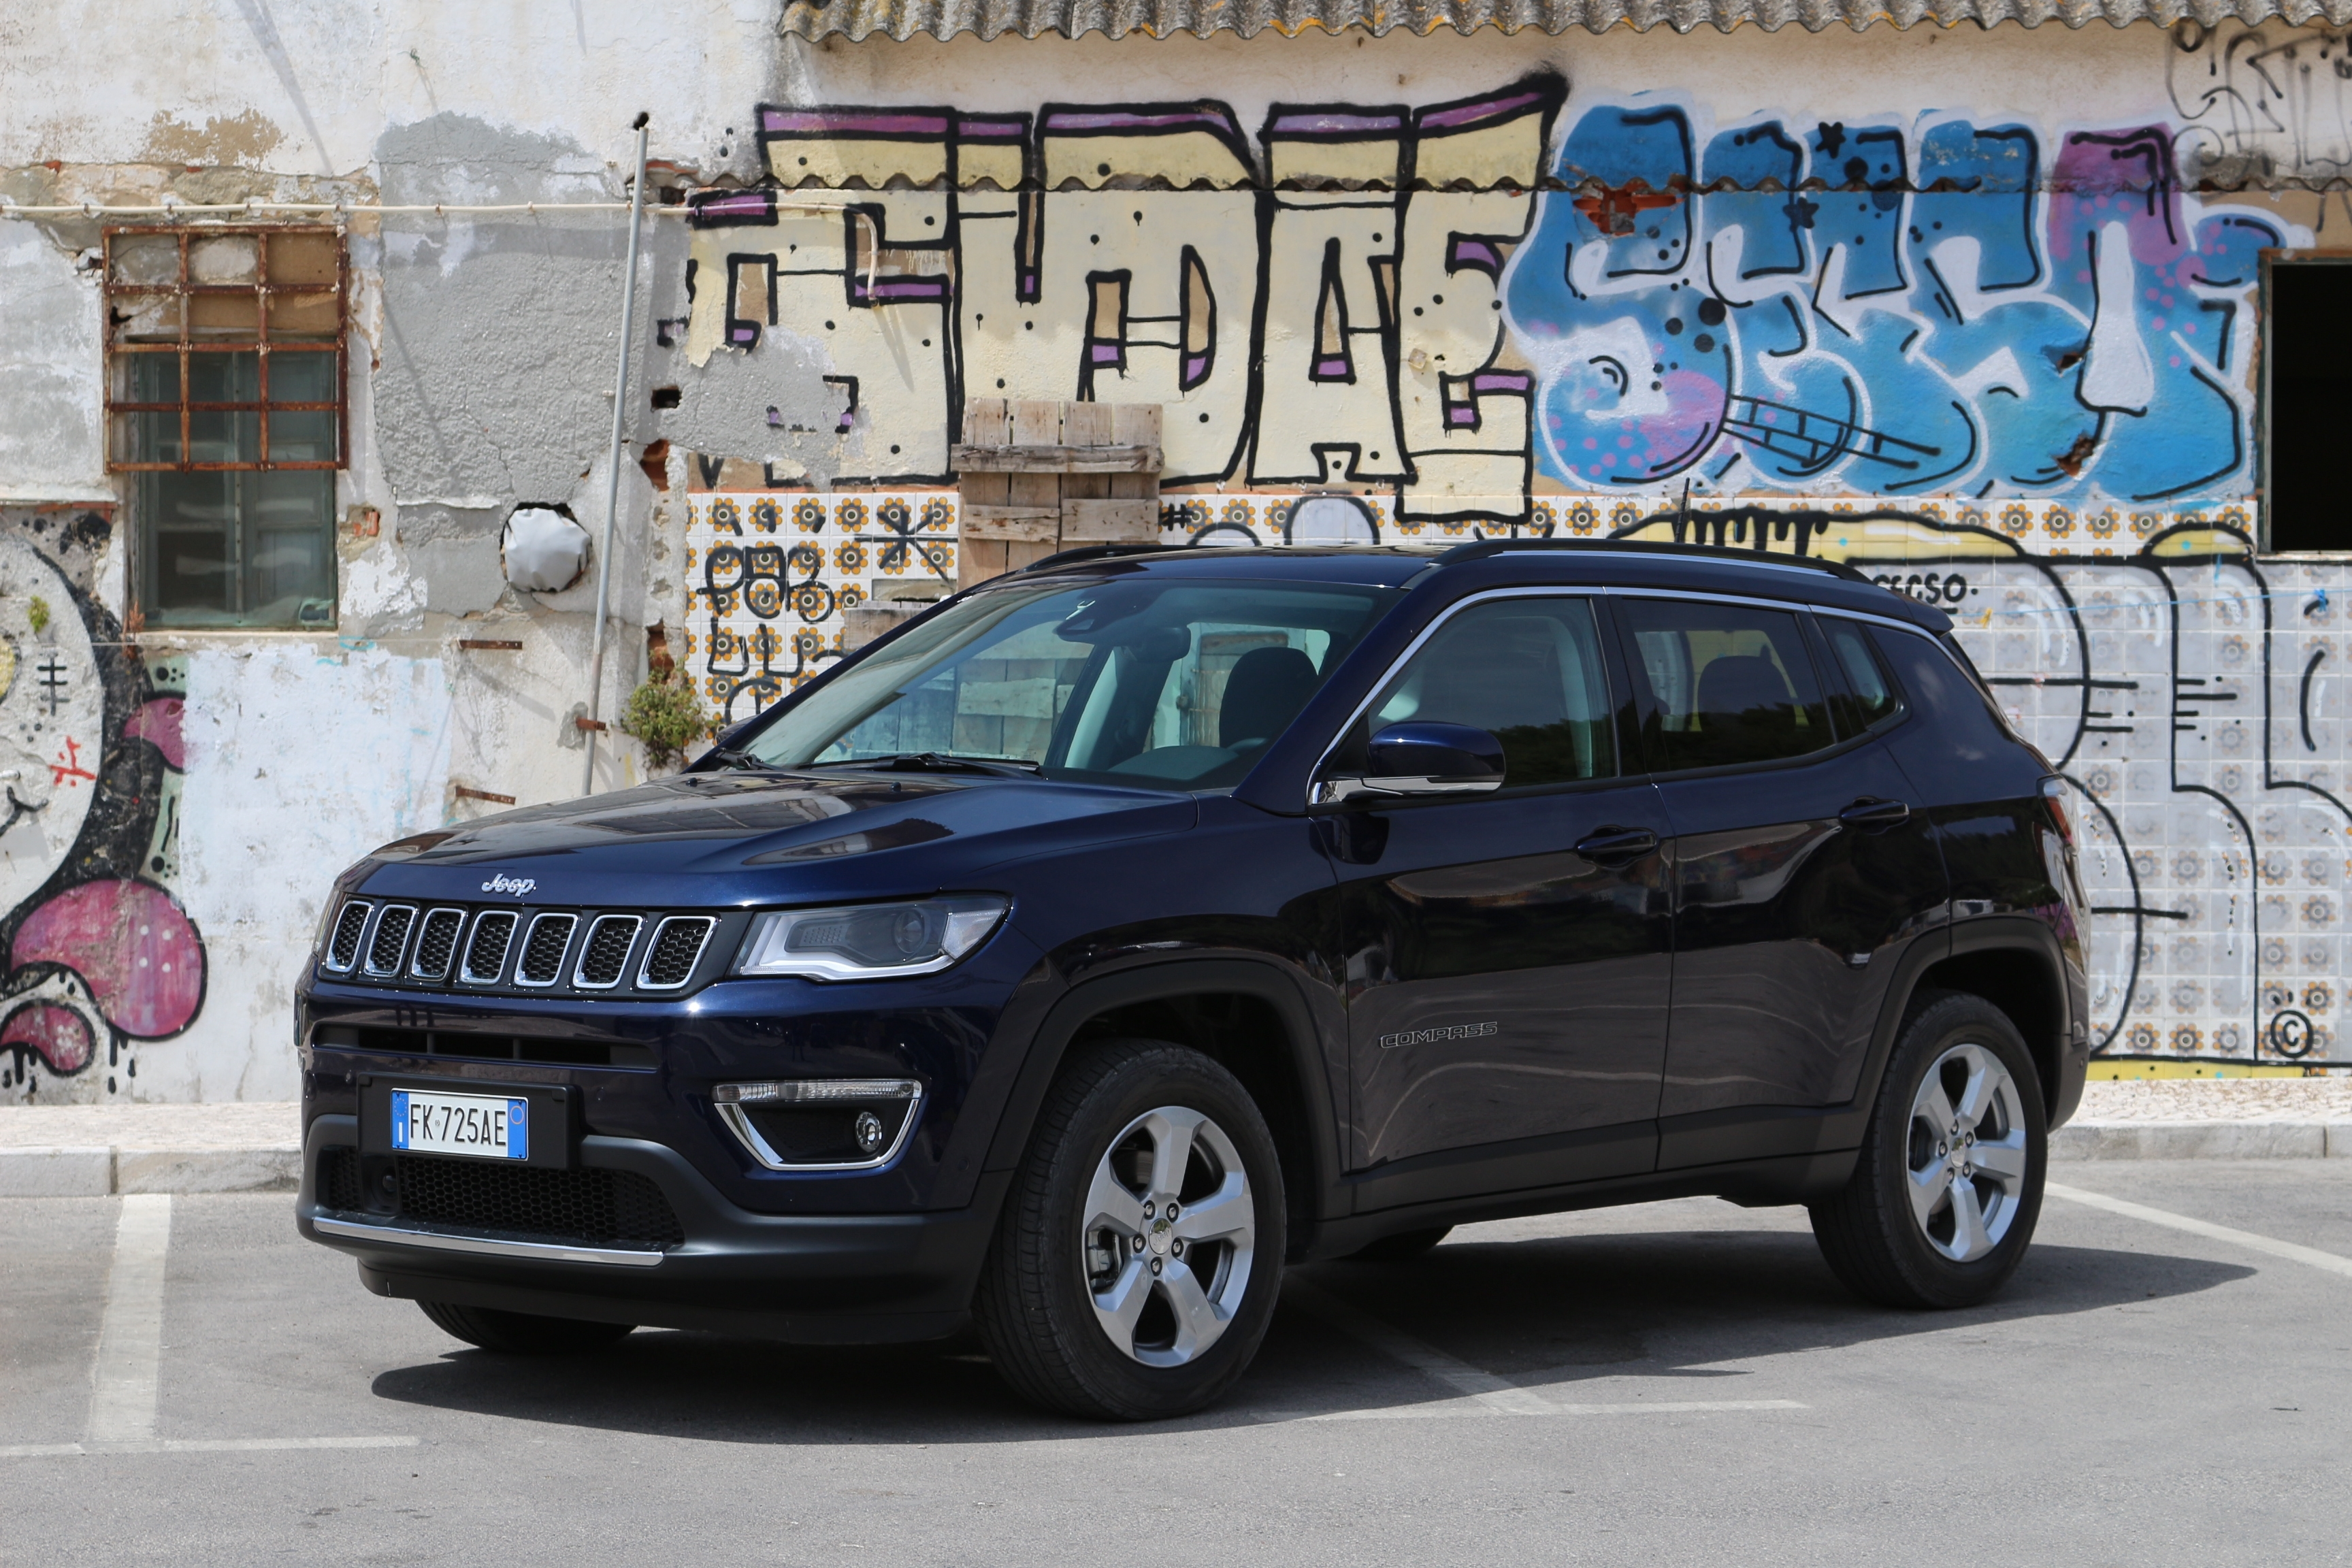 le jeep compass arrive en concession la grenouille a perdu le nord. Black Bedroom Furniture Sets. Home Design Ideas